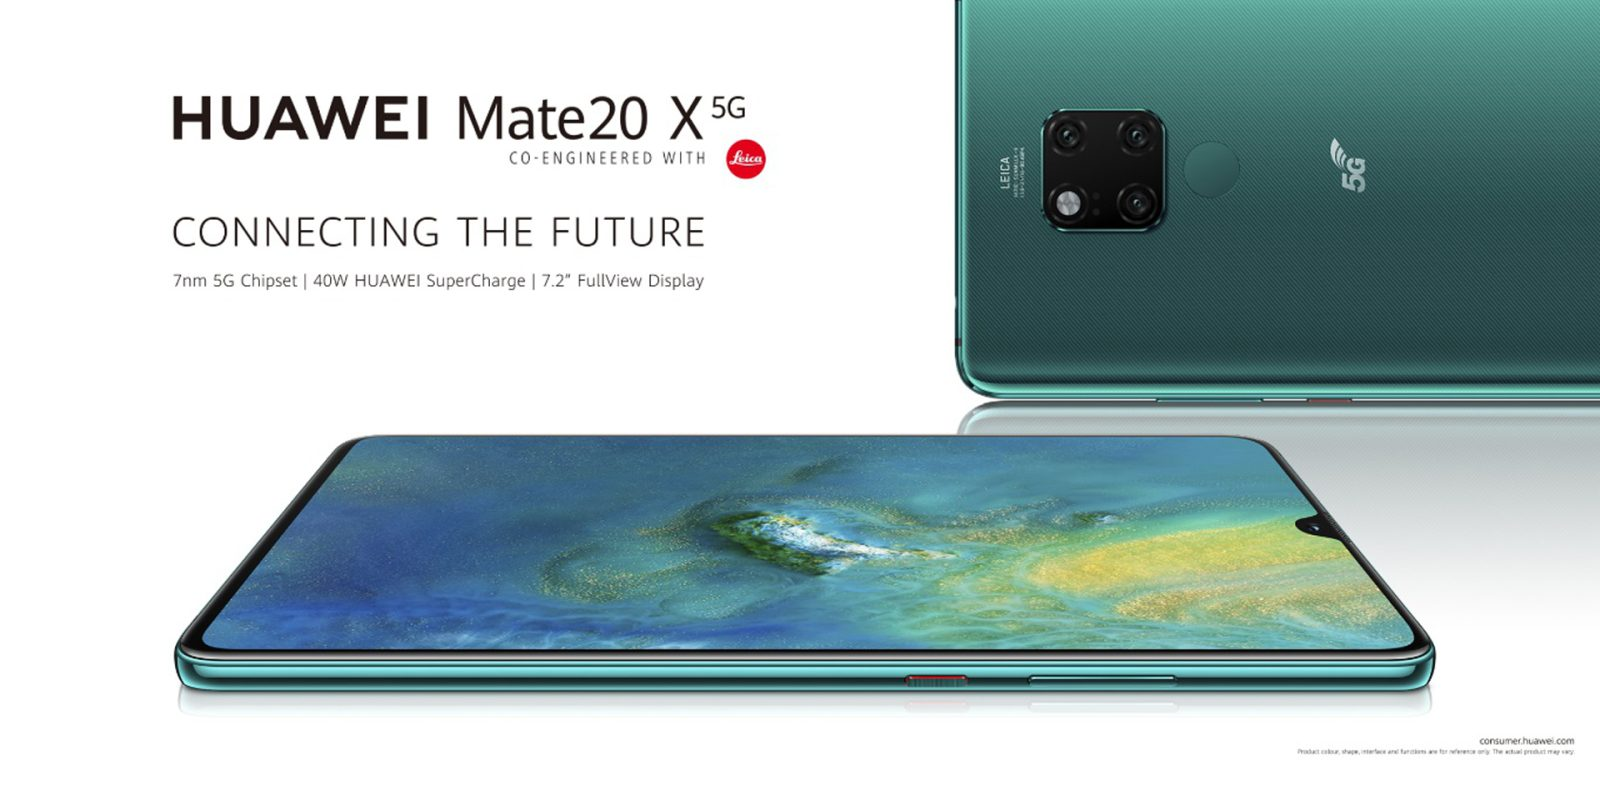 The Huawei Mate 20X 5G is just a 5G update of the 20X